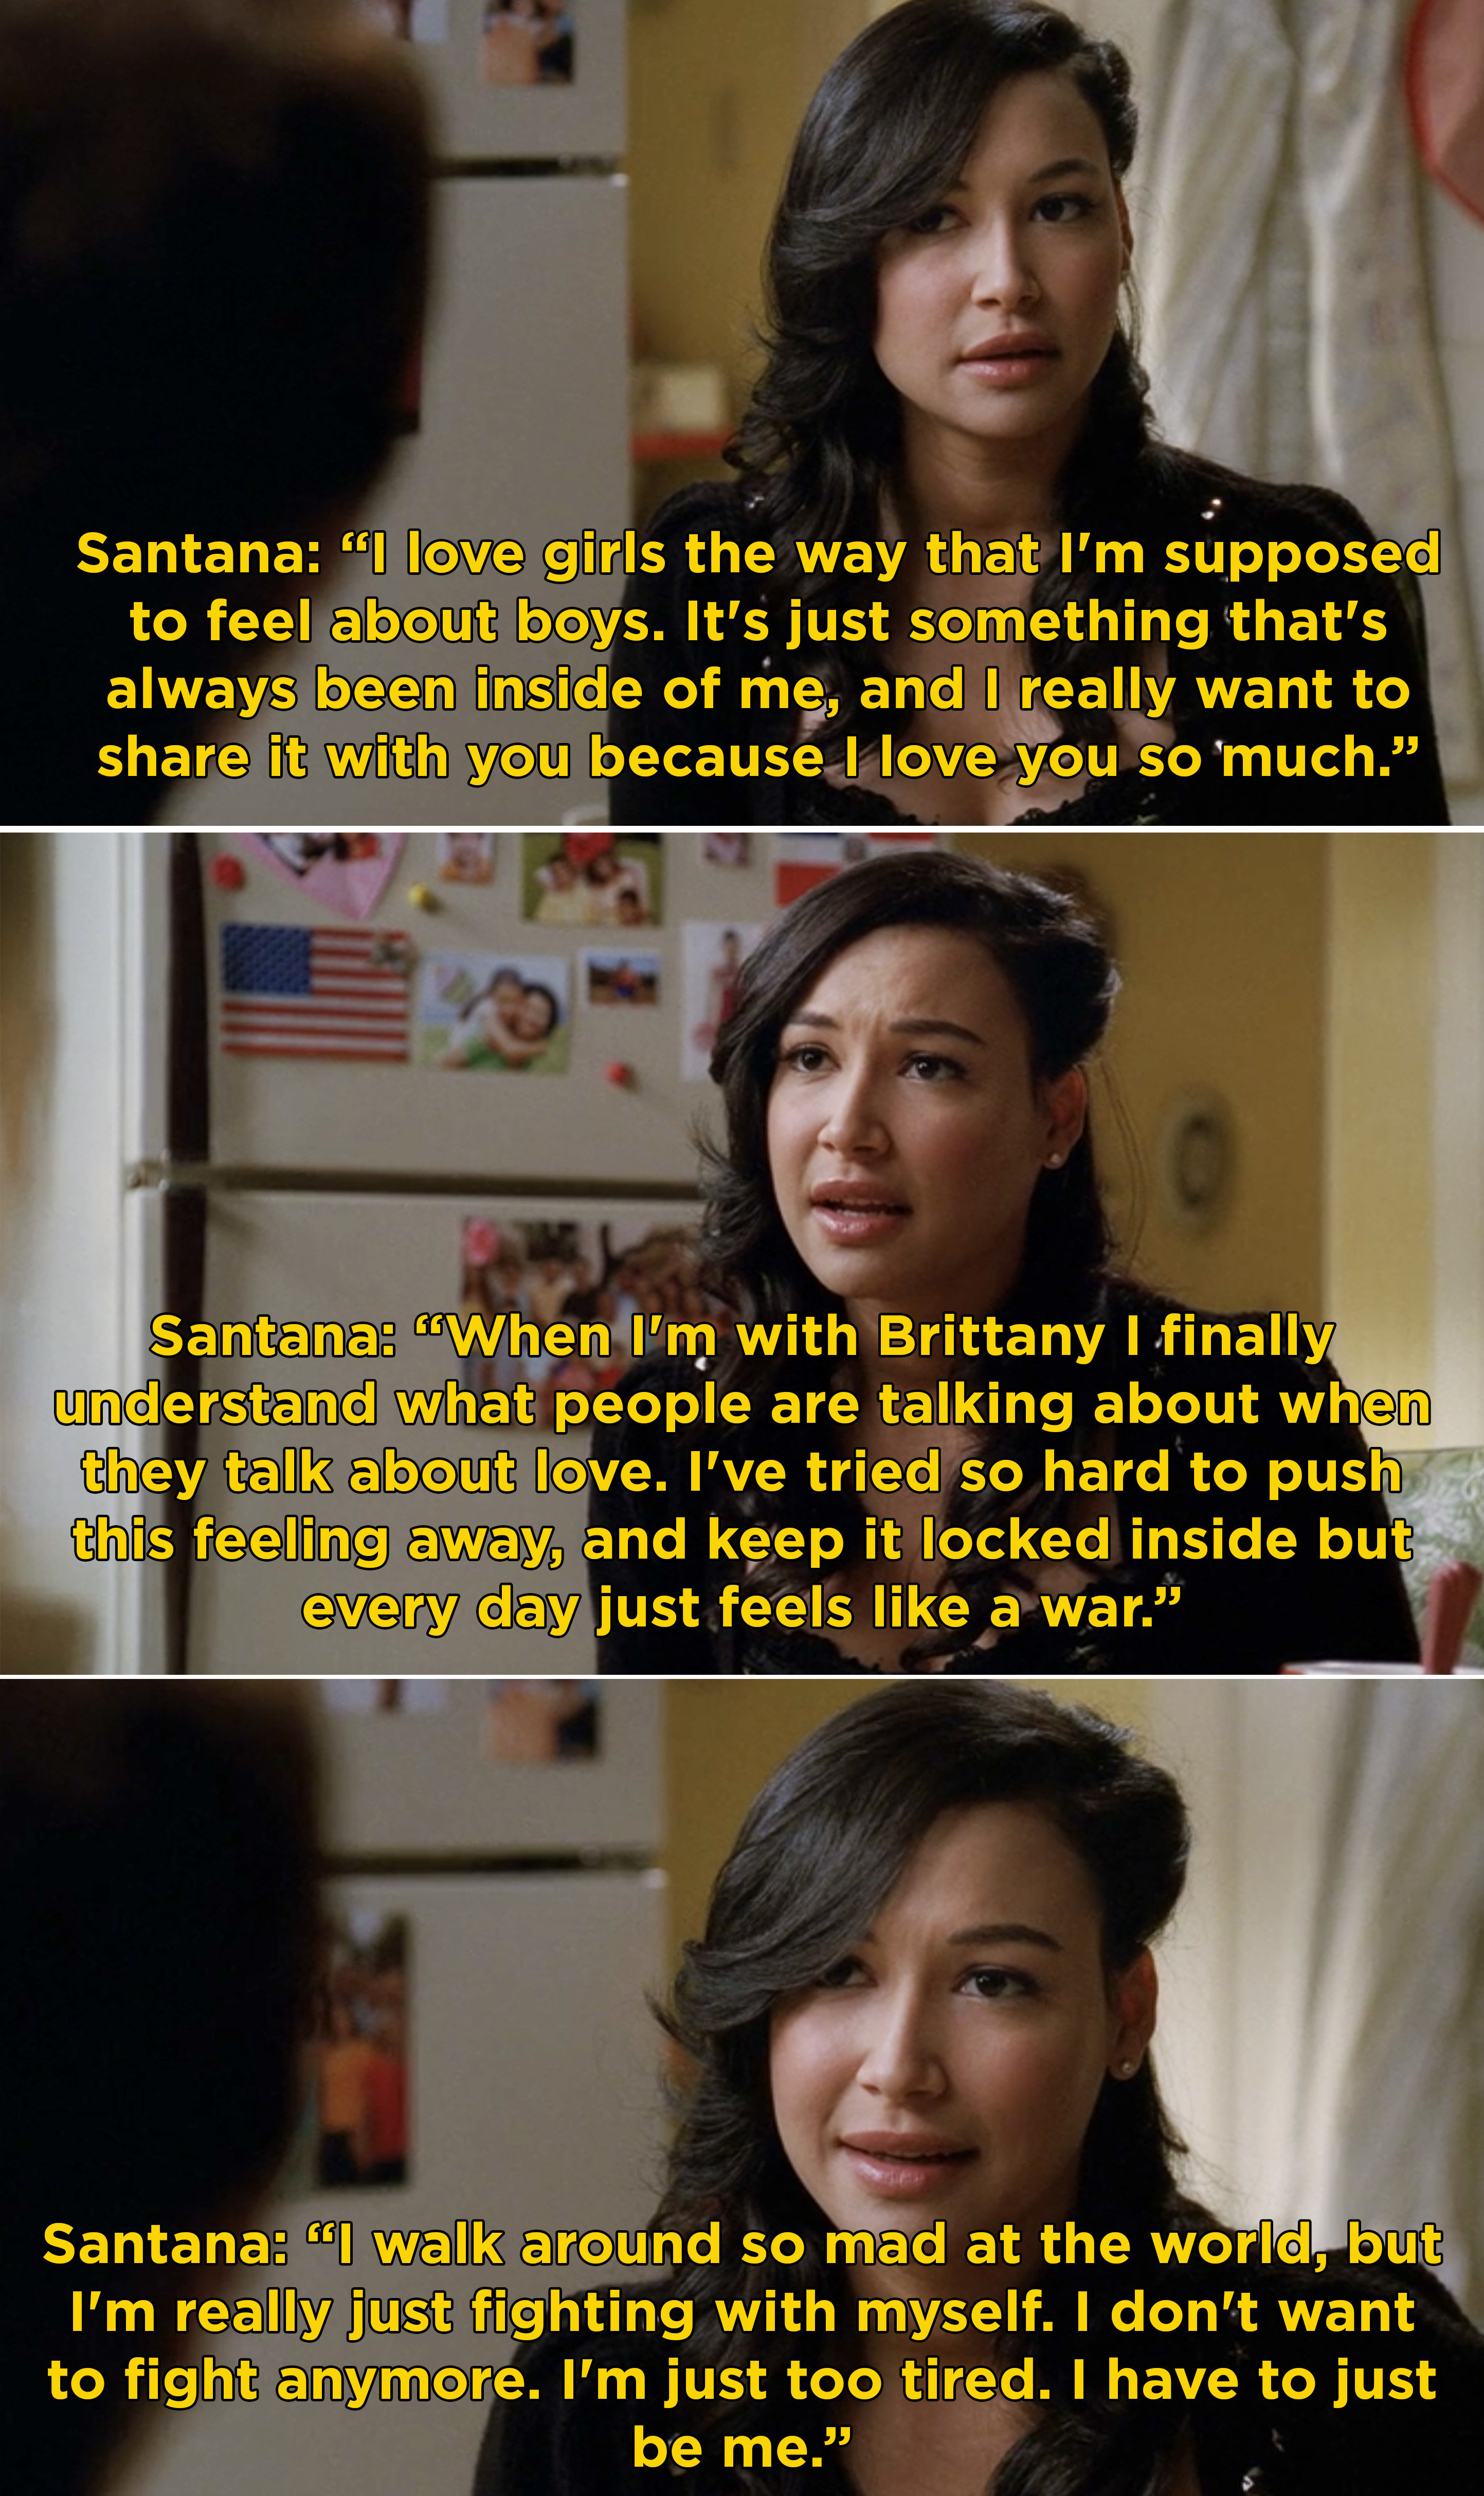 """Santana says she loves girls """"the way she's supposed to feel about boys,"""" that she walks around so angry at the world because she's fighting a war with herself every day"""